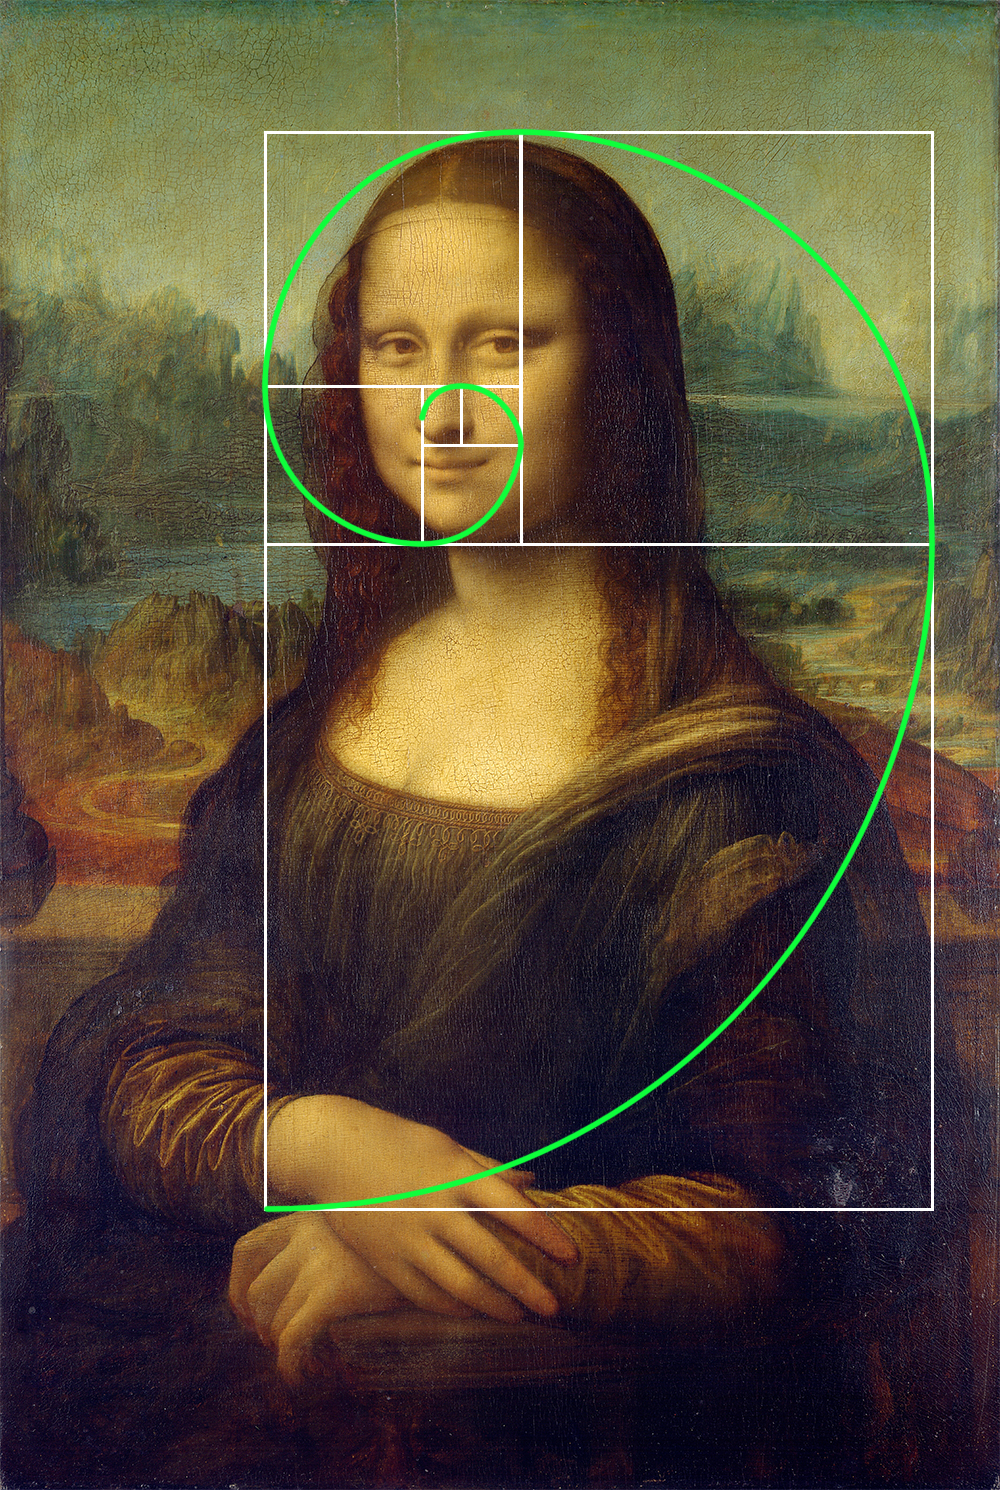 mona_lis_golden_ratio